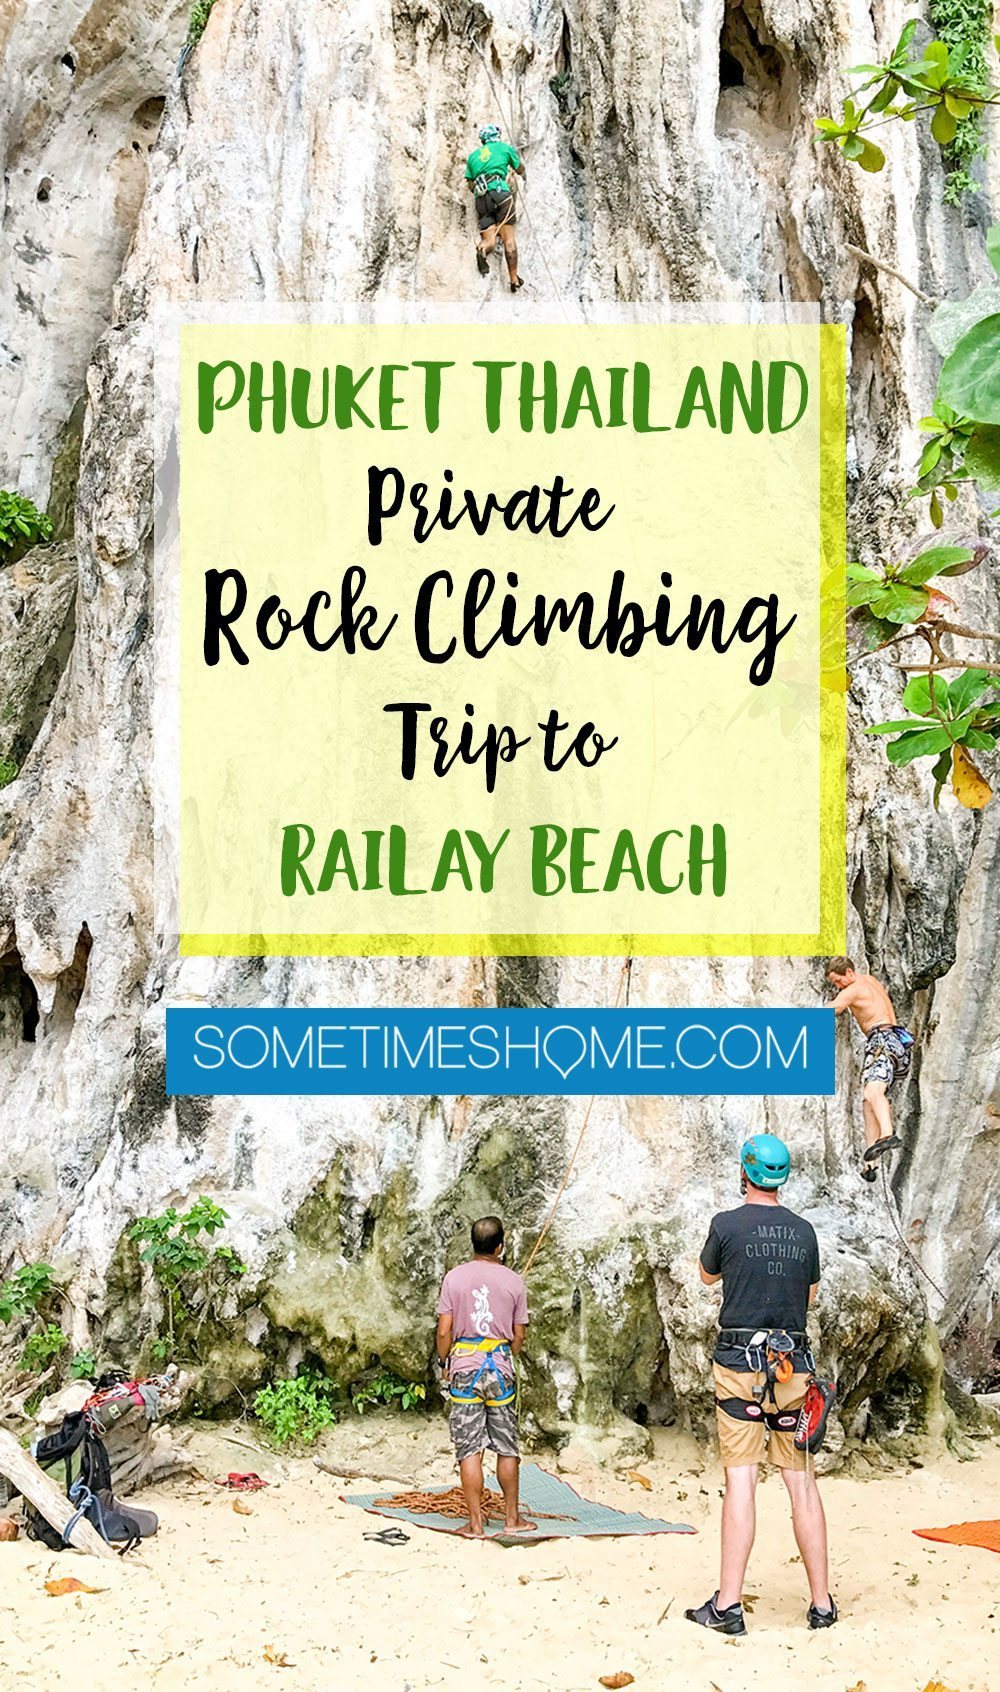 Phuket Thailand Private Rock Climbing Trip to Railay Beach with Gecko Thailand on Sometimes Home travel blog.